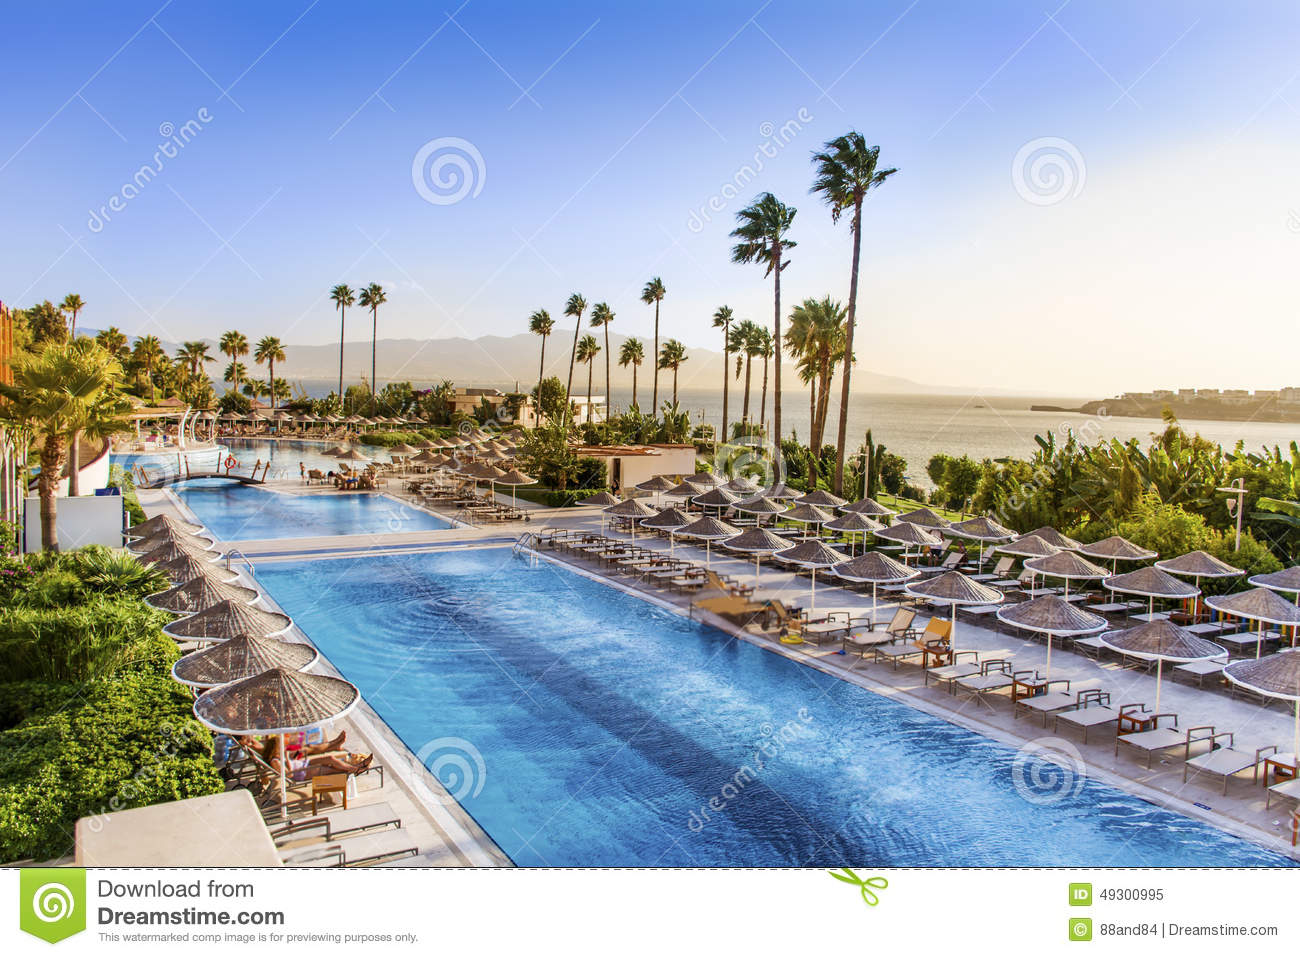 Big outdoor pool with palms and sea in background sunset sky for Big outdoor pool